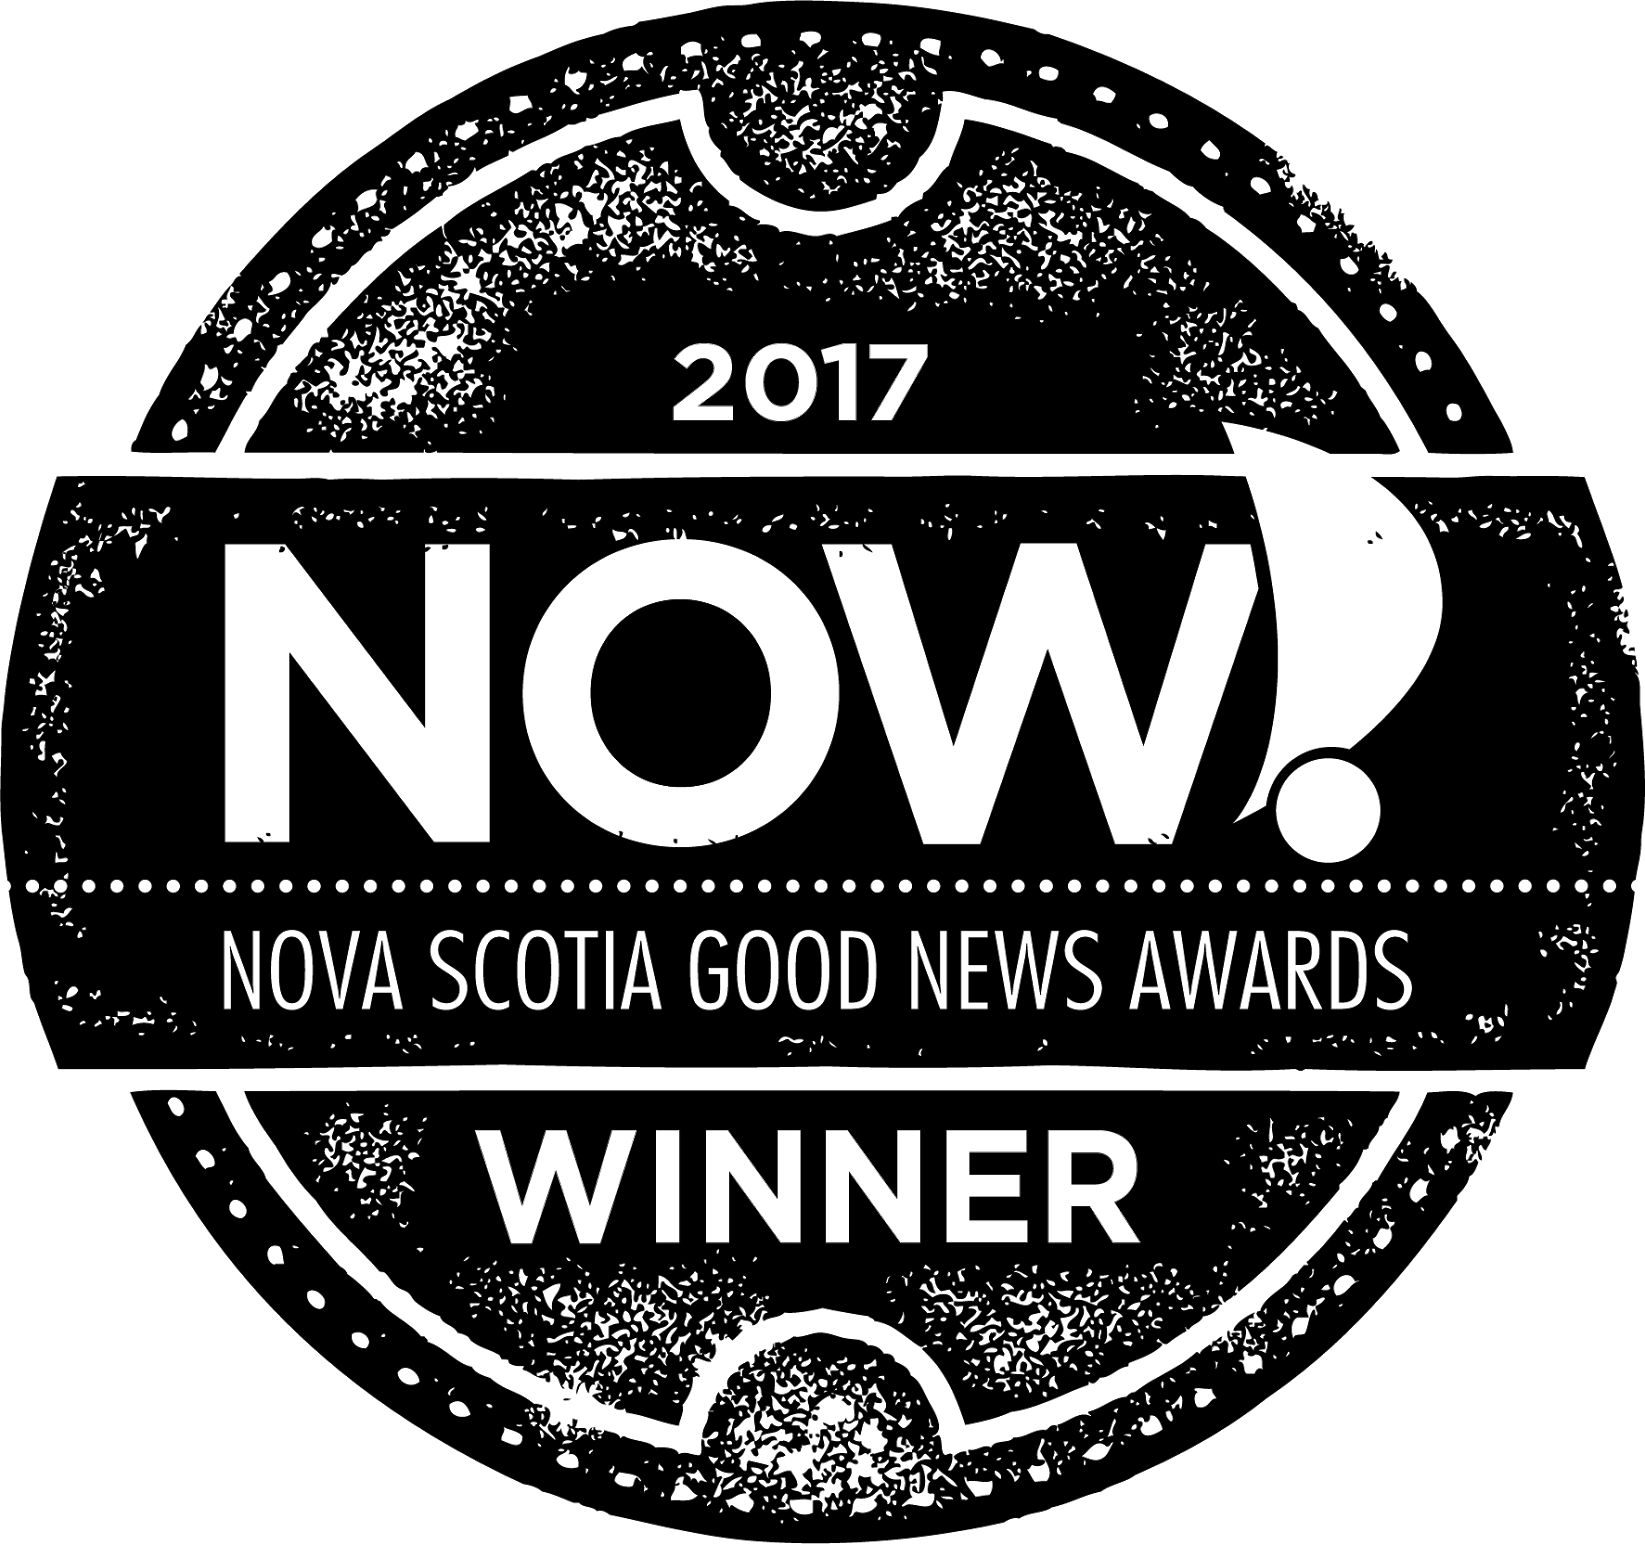 Smarter Spaces wins 2017 Now Award